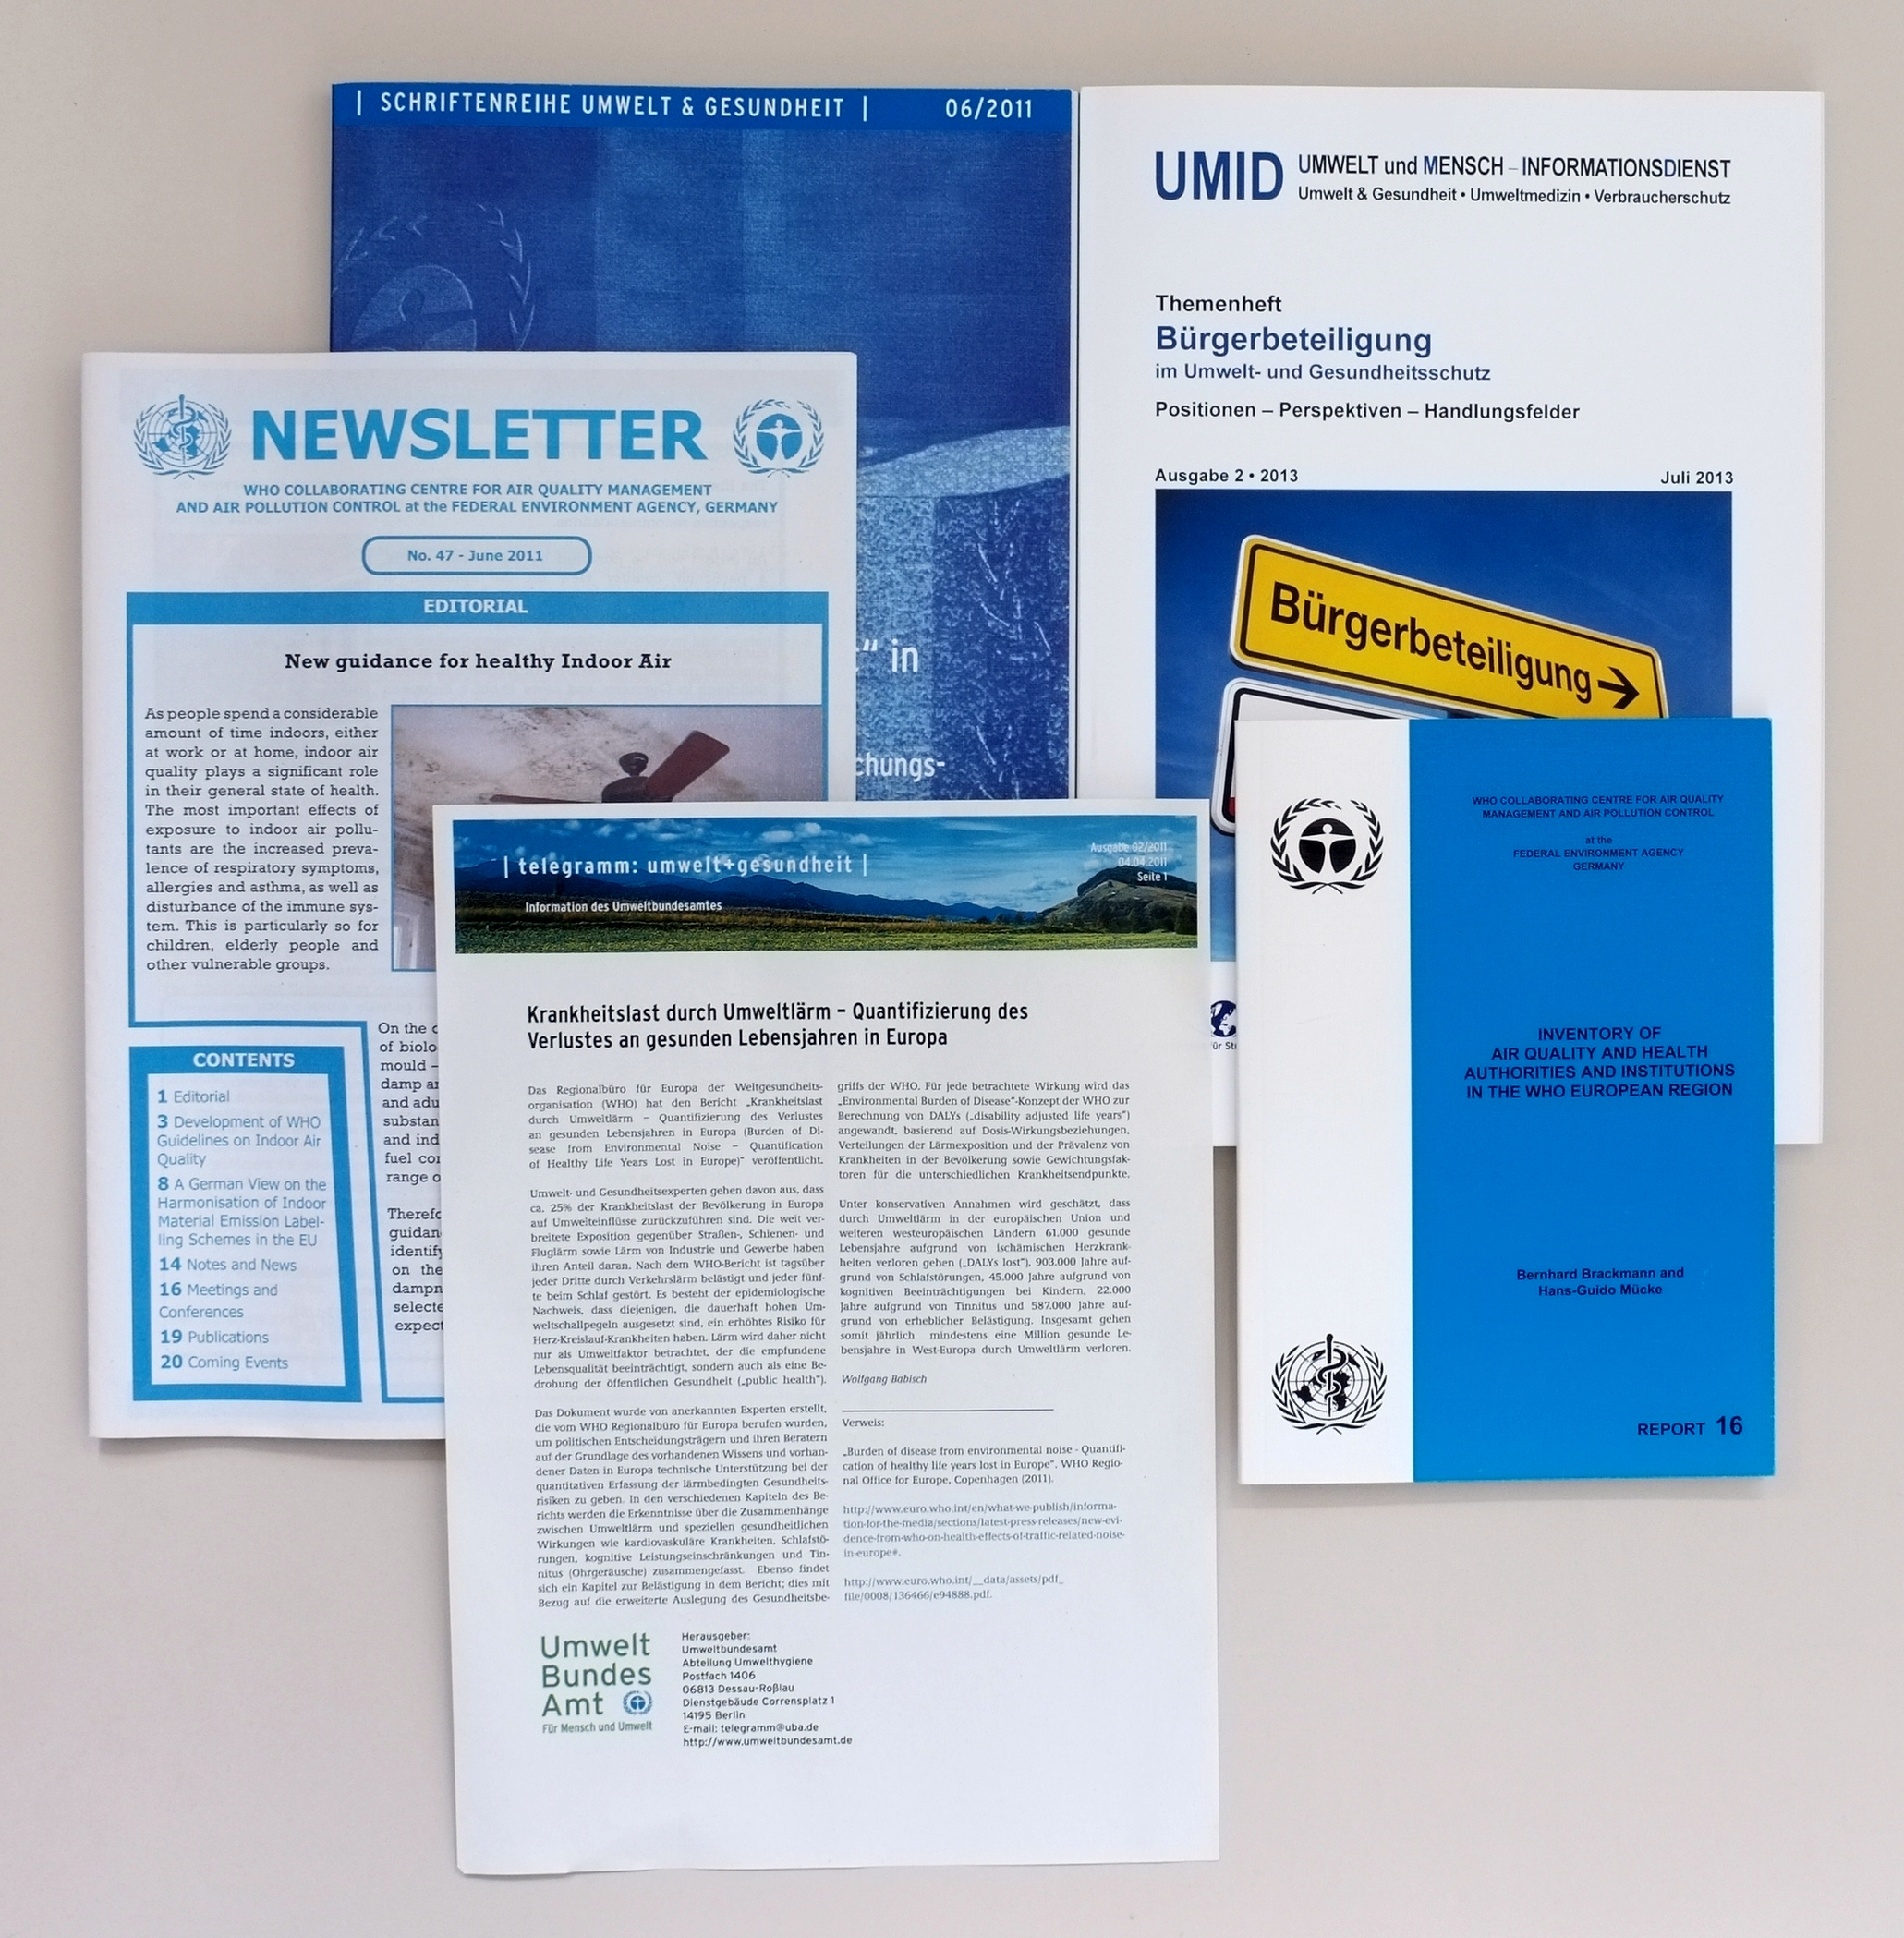 The cover pictures of newsletters and series about environment and health are shown.